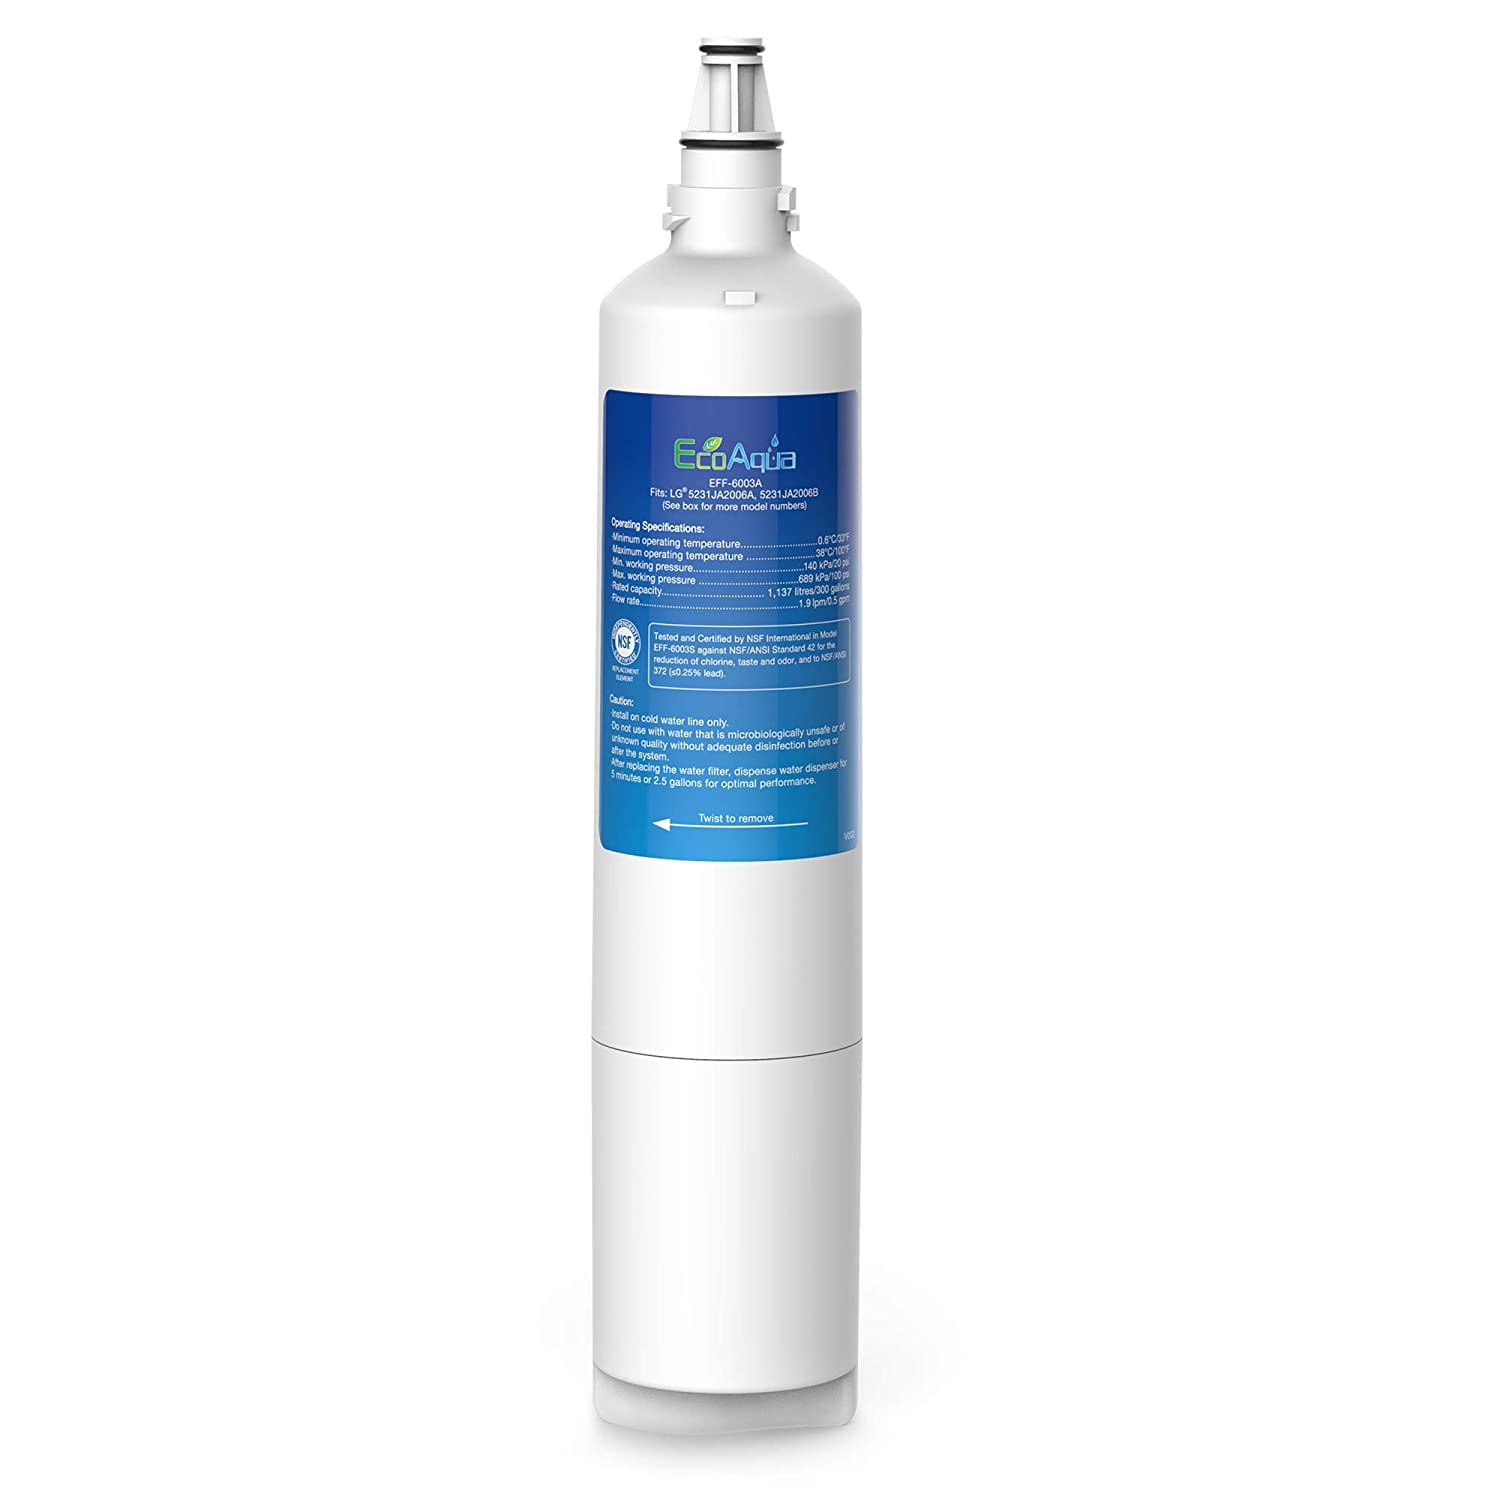 EcoAqua EFF-6003A Replacement Filter, Compatible with LG LT600P, 5231JA2006A, 5231JA2006B, KENMORE 46-9990, 9990, 469990 Refrigerator Water Filter